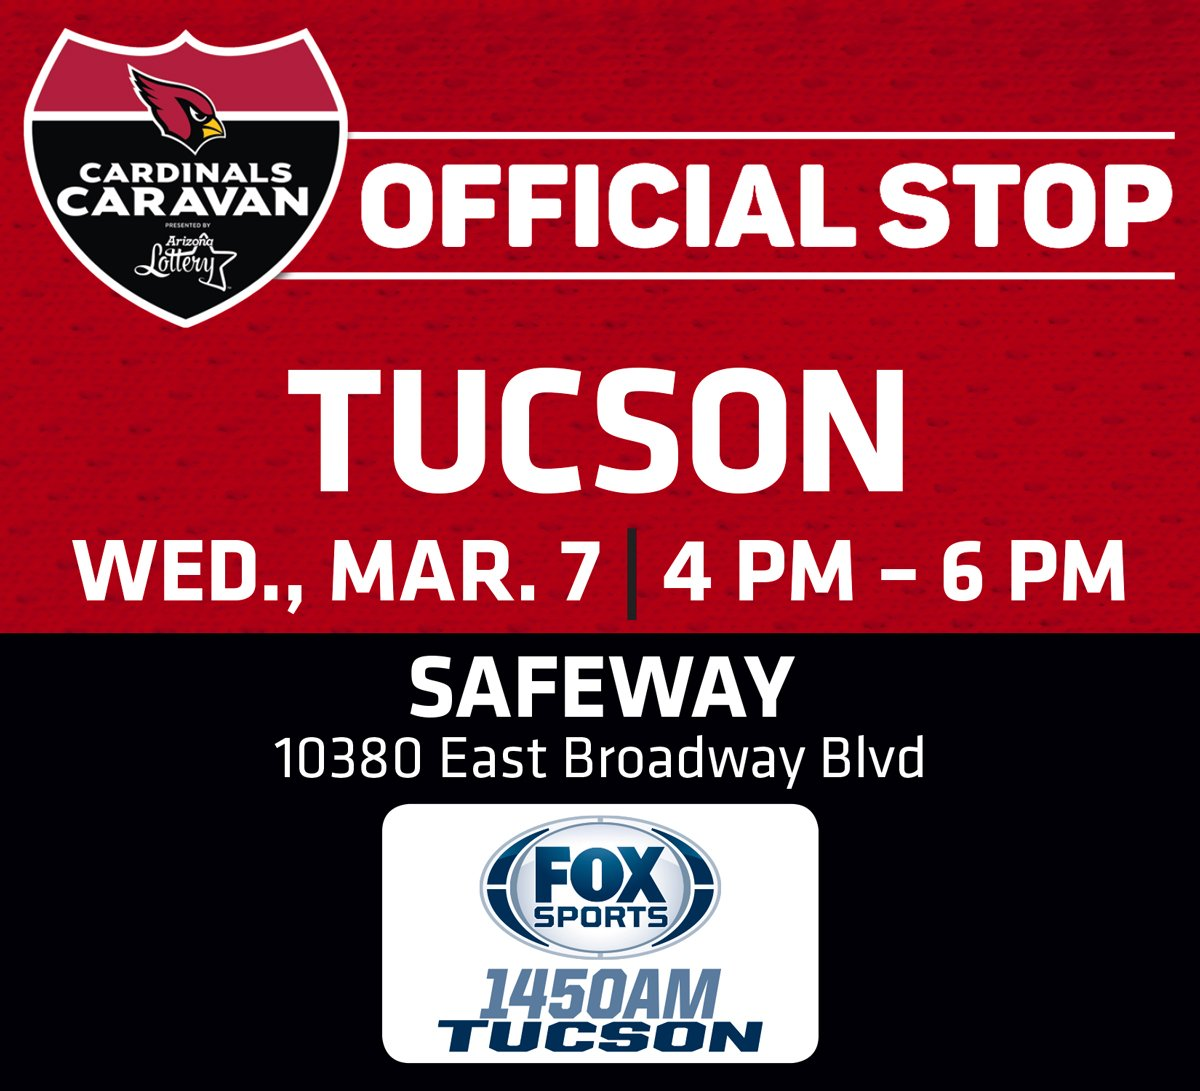 The Cardinals Caravan presented by @AZLottery is in Tucson today. https://t.co/Cci5dVbrl7